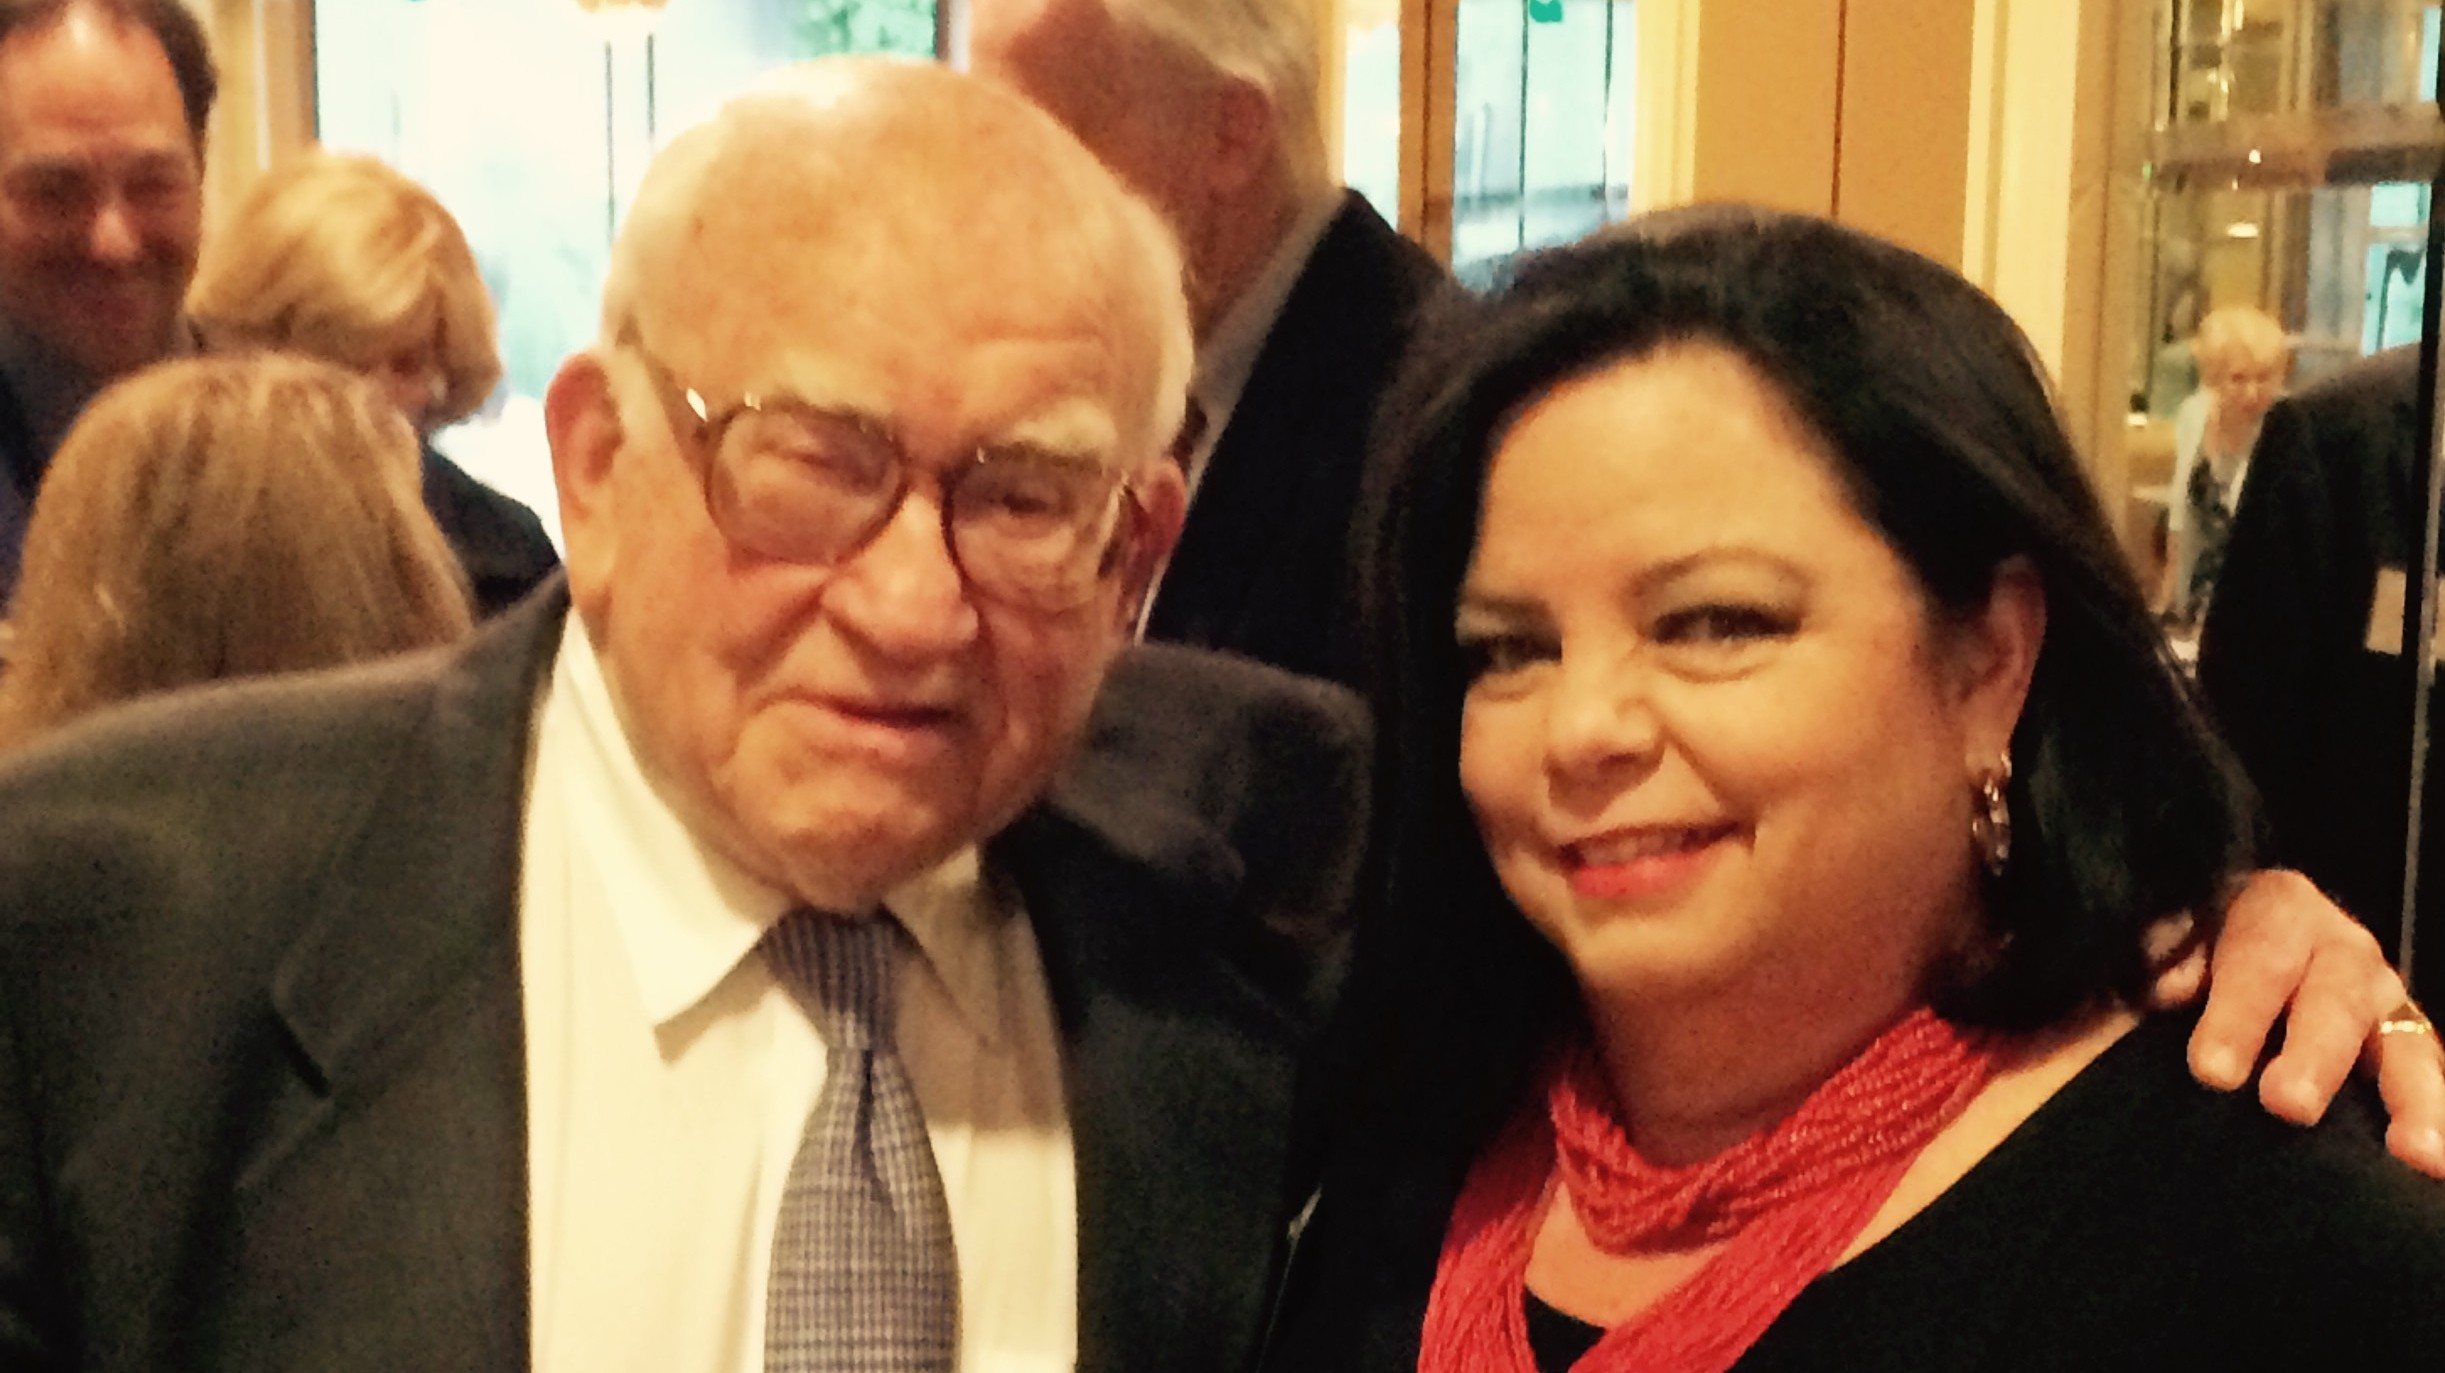 Photo Credit: Ed Asner and Cynthia Willis-Esqueda at the Death Penalty Focus awards dinner